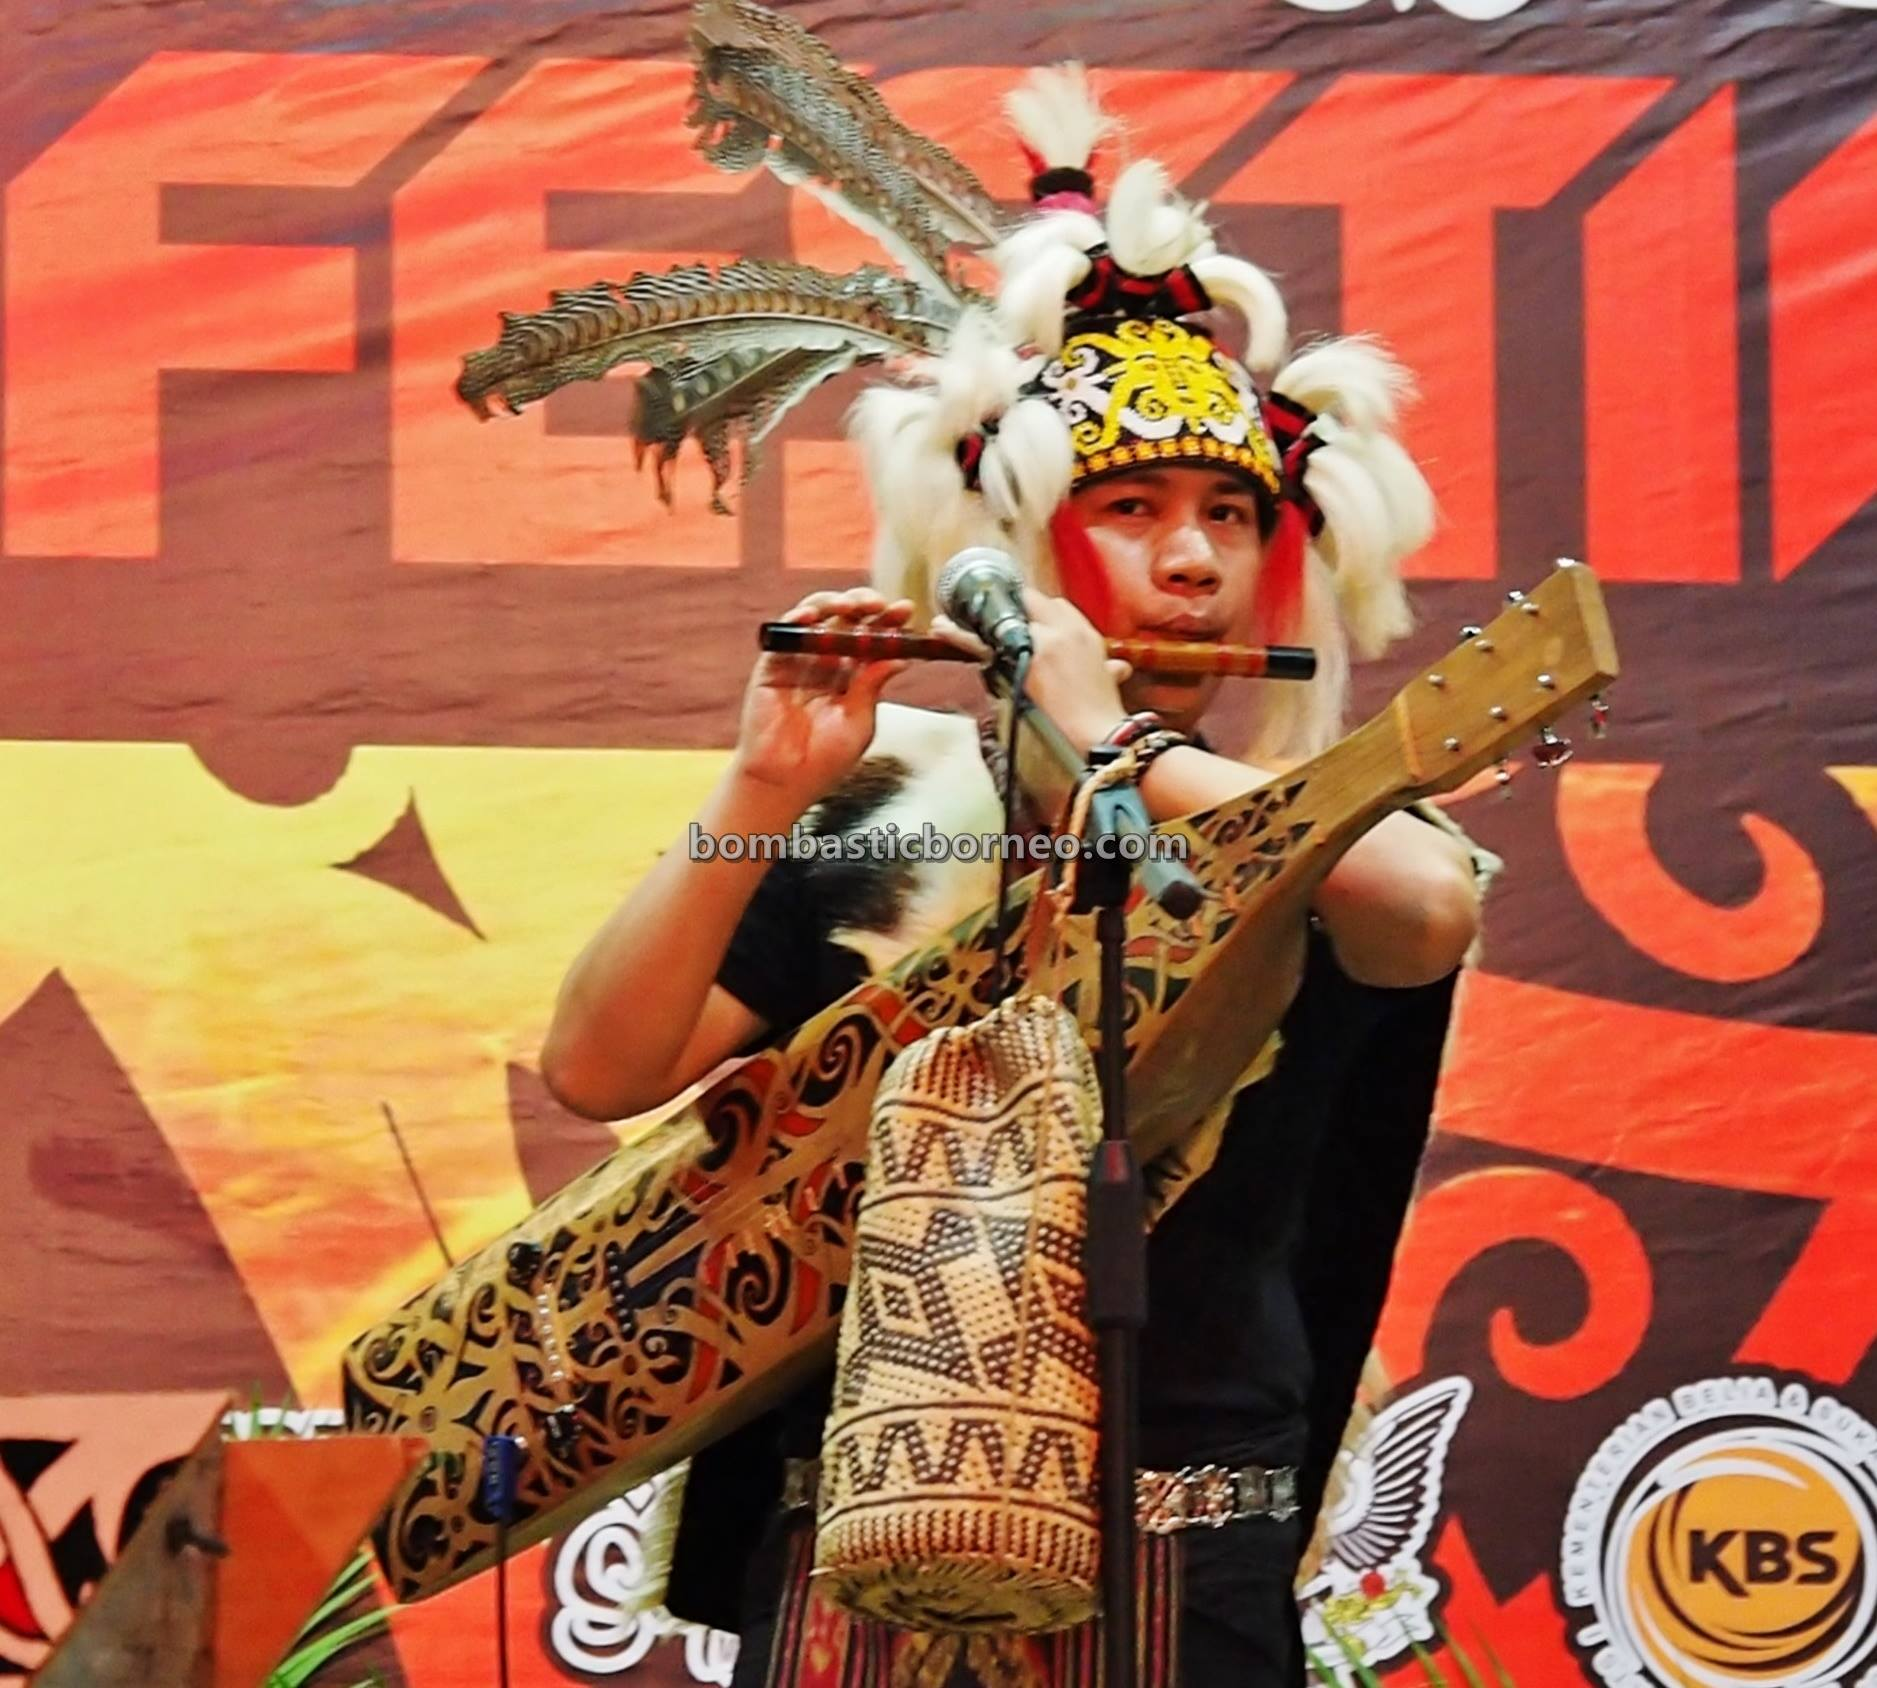 Borneo Youth Sape Festival, authentic, backpackers, Ethnic, native, tribe, orang ulu, guitar, Sibu, Sarawak, One Malaysia Cultural Village, Tourism, tourist attraction, travel guide, cross border,